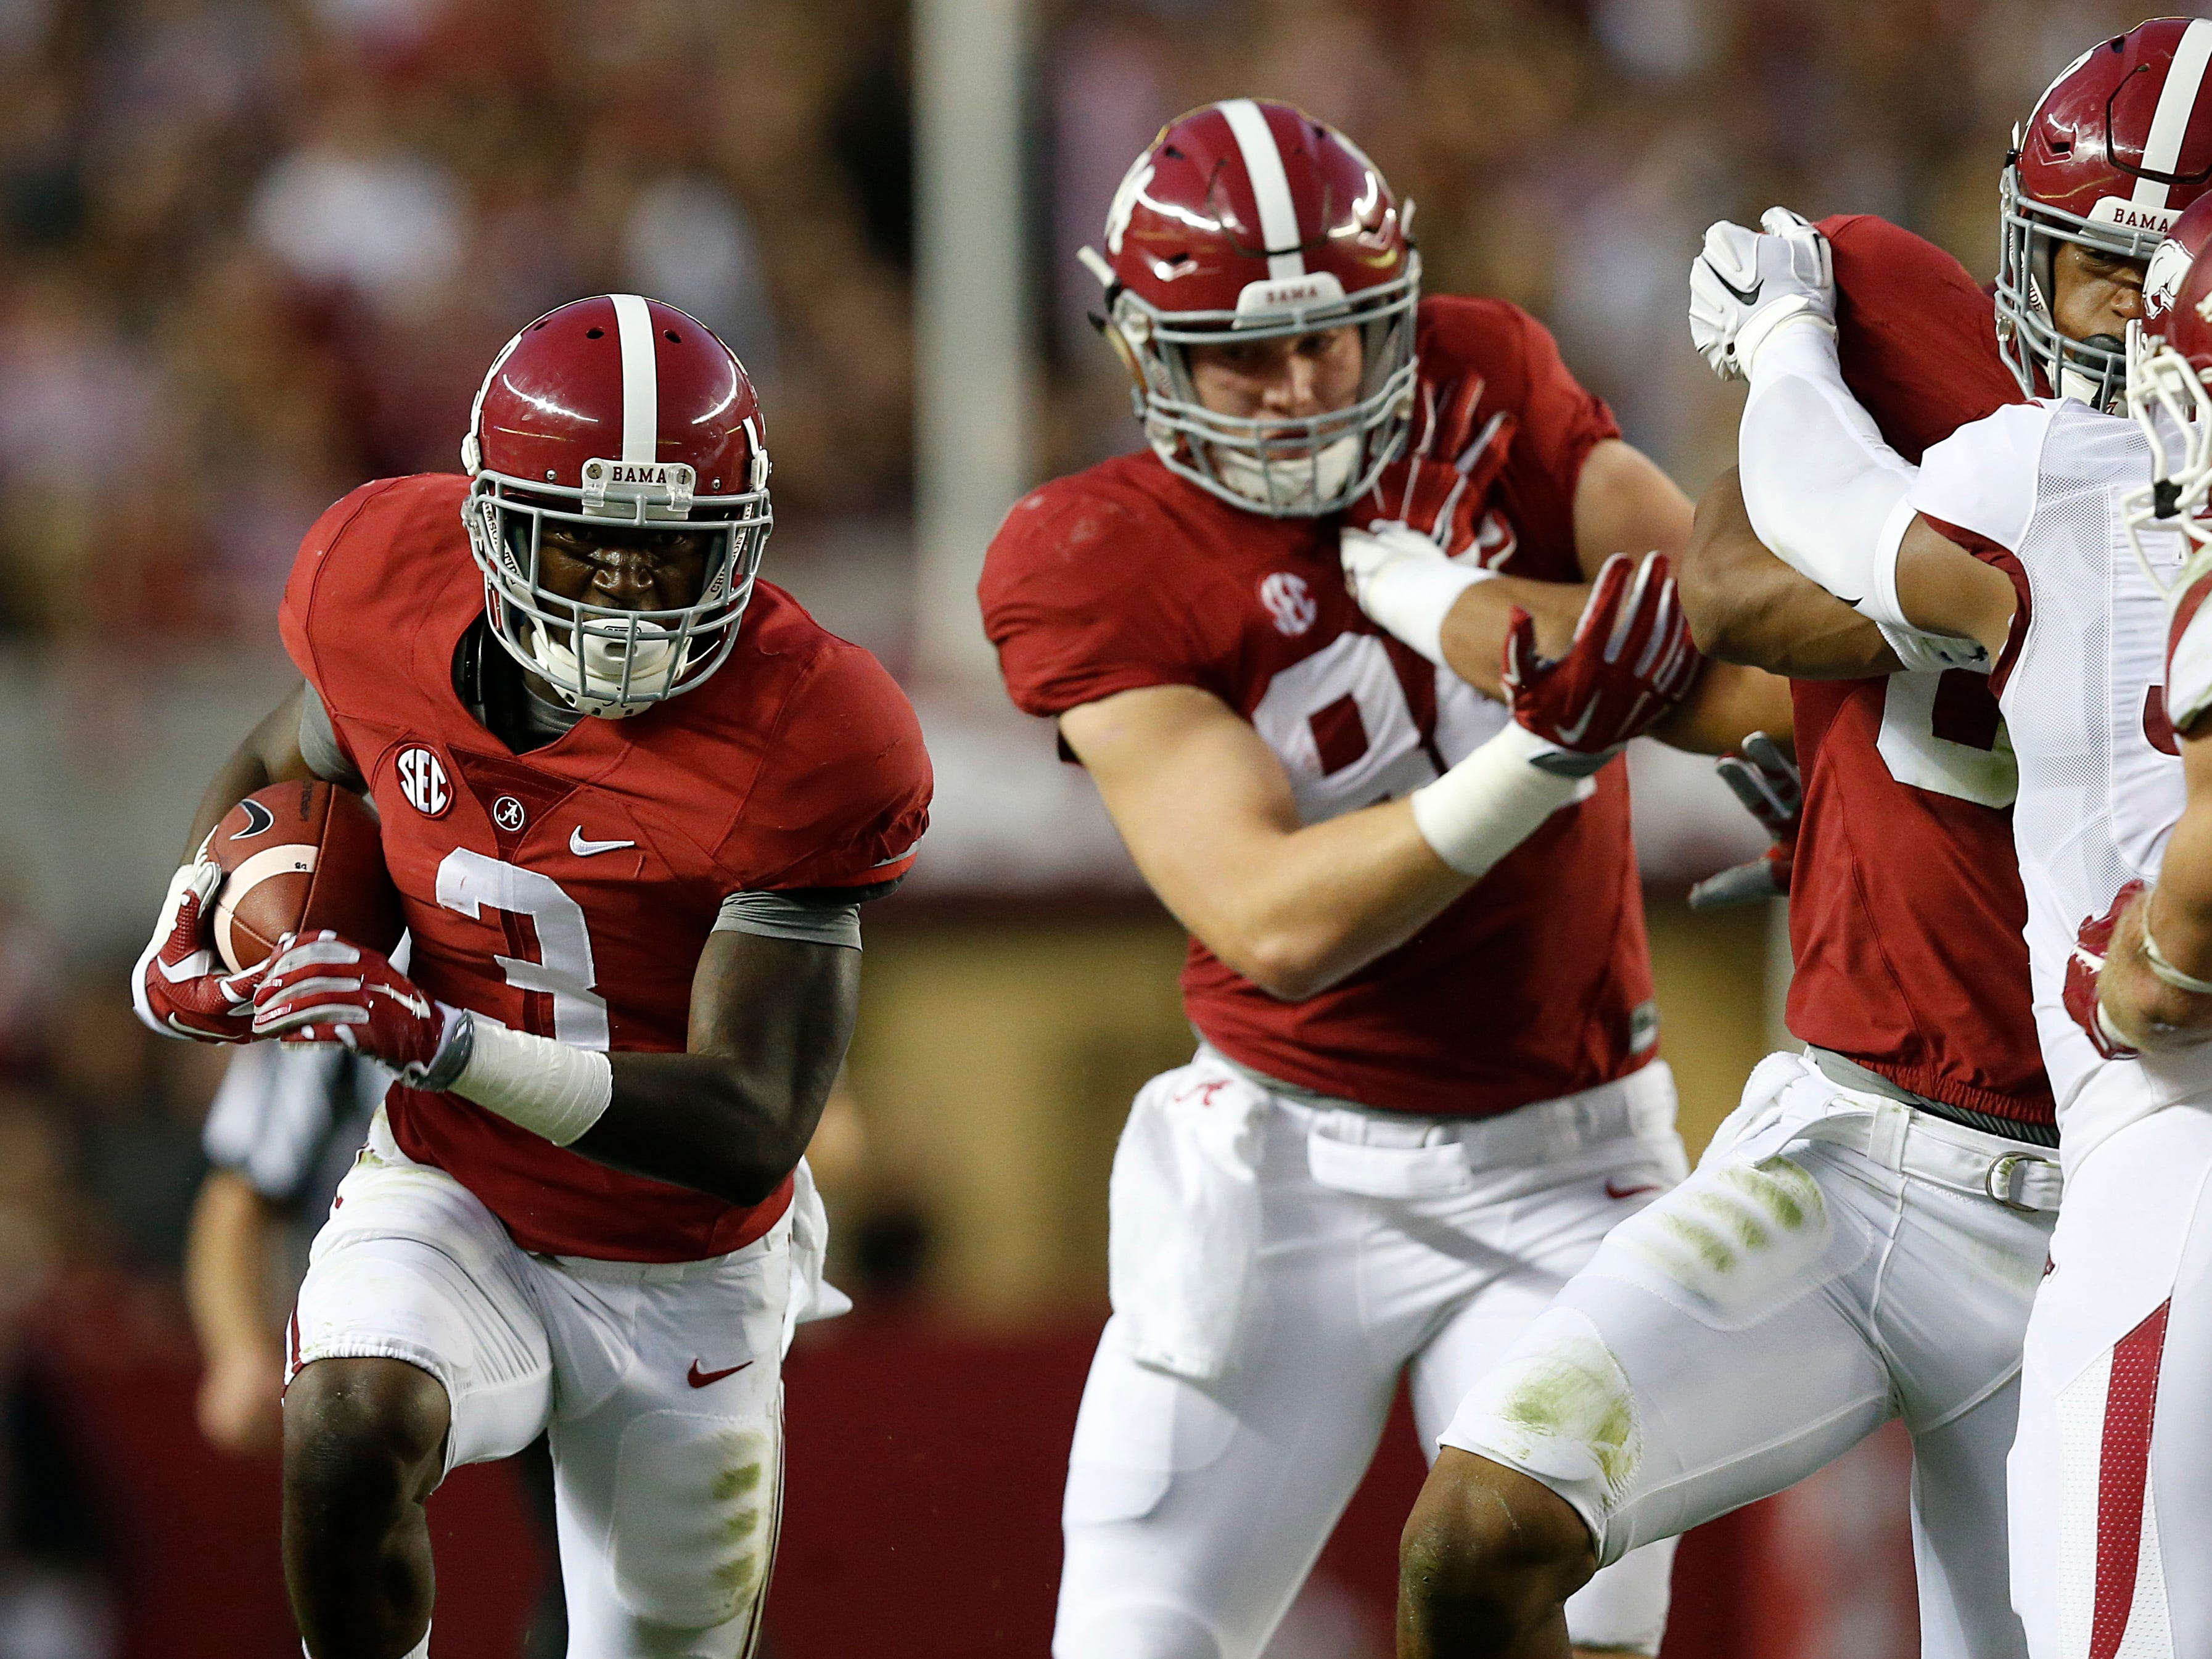 Alabama wide receiver Calvin Ridley (3) runs the ball against Arkansas in the first half of an NCAA college football game, Saturday, Oct. 10, 2015, in Tuscaloosa, Ala. (AP Photo/Brynn Anderson)